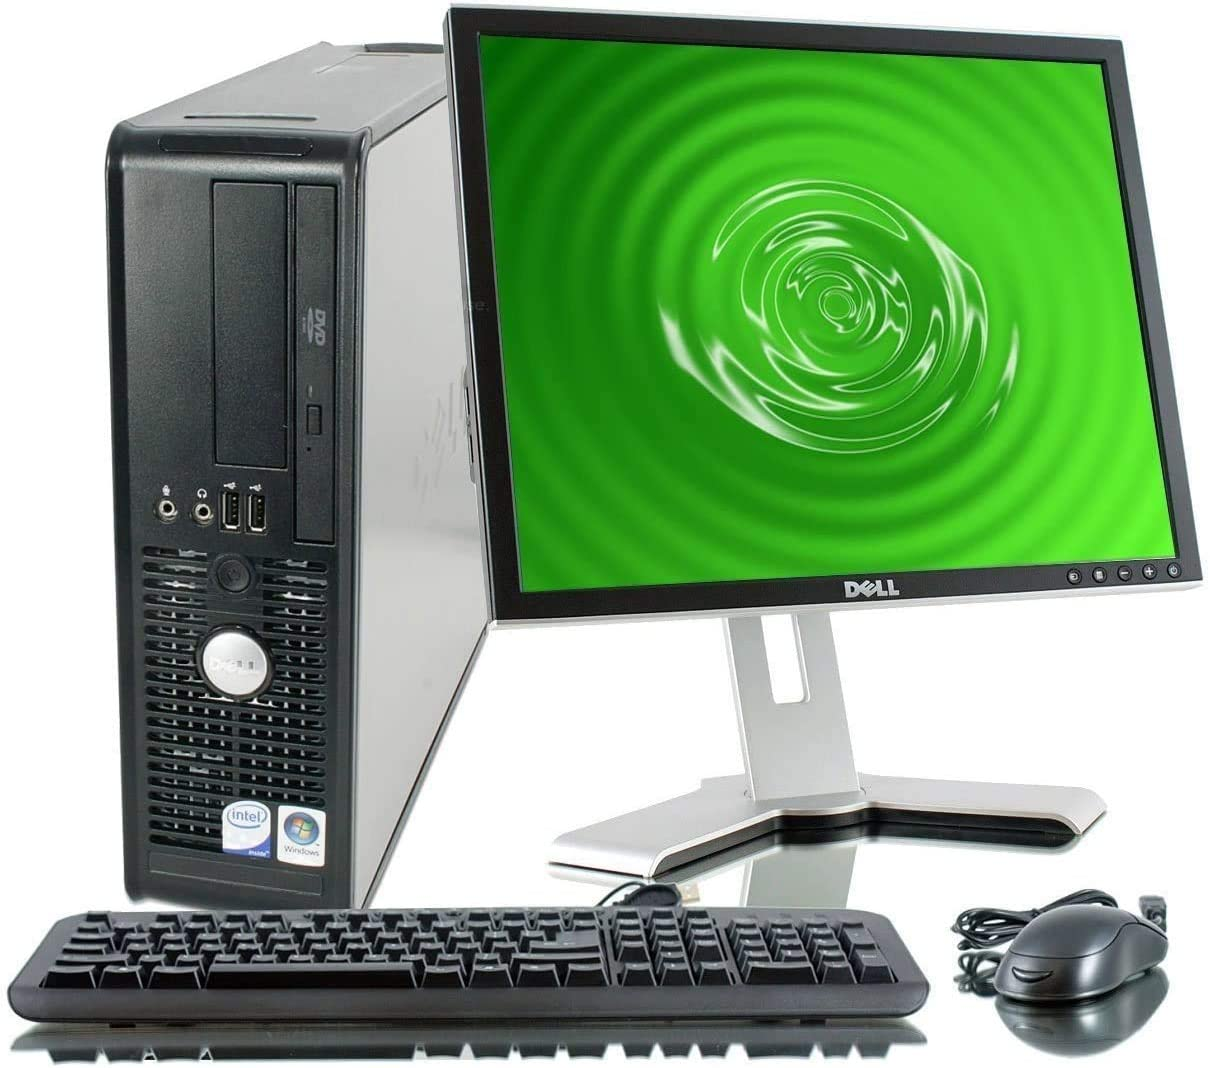 2018 Dell OptiPlex Desktop Complete Computer Package with DVD, WiFi, Windows 10 - Keyboard, Mouse, 19in LCD Monitor(Brands May Vary) (Renewed) - Multi-Language Support English/Spanish